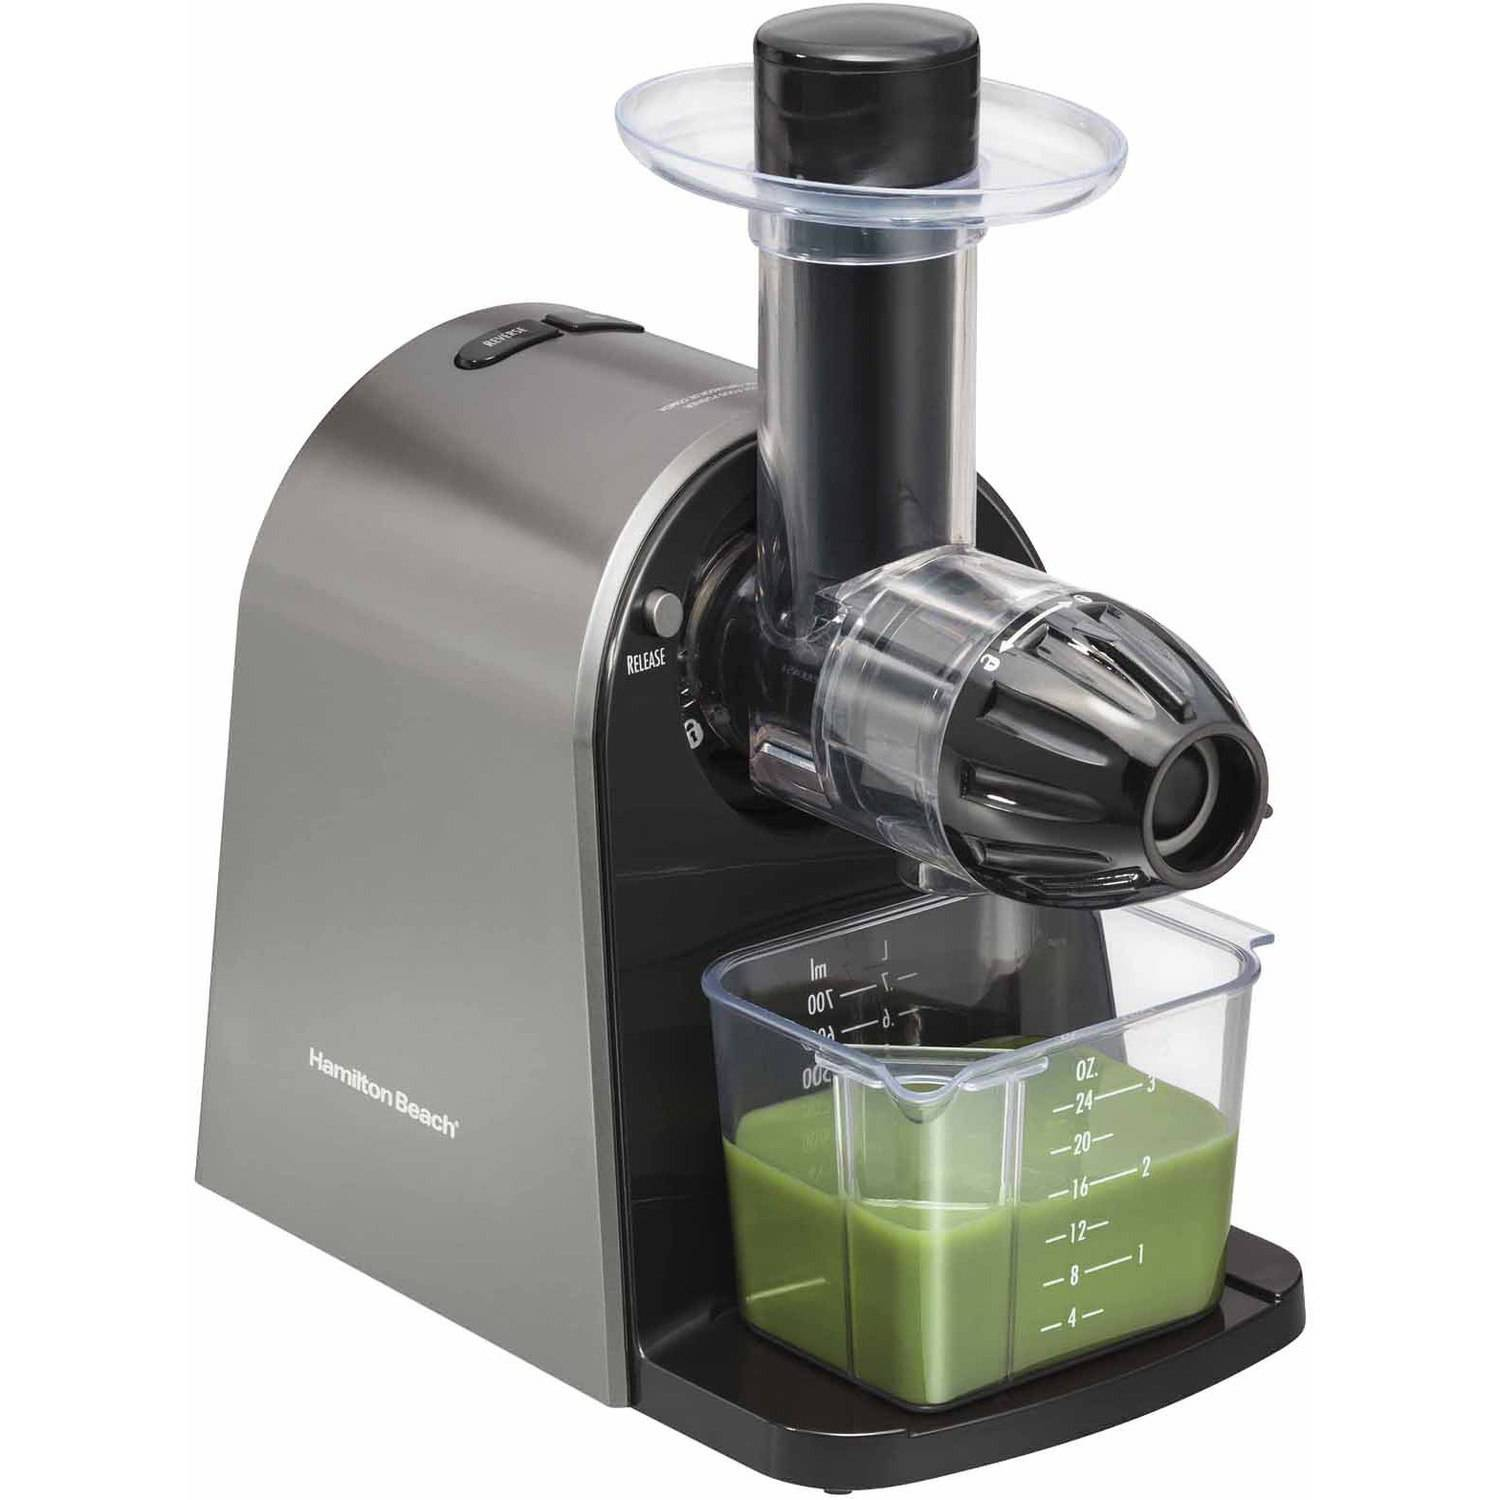 Best Masticating Juicer Recipes : Cold Press Juicer Machine - Masticating Juicer Slow Juice Extractor Maker Electric Juicing ...